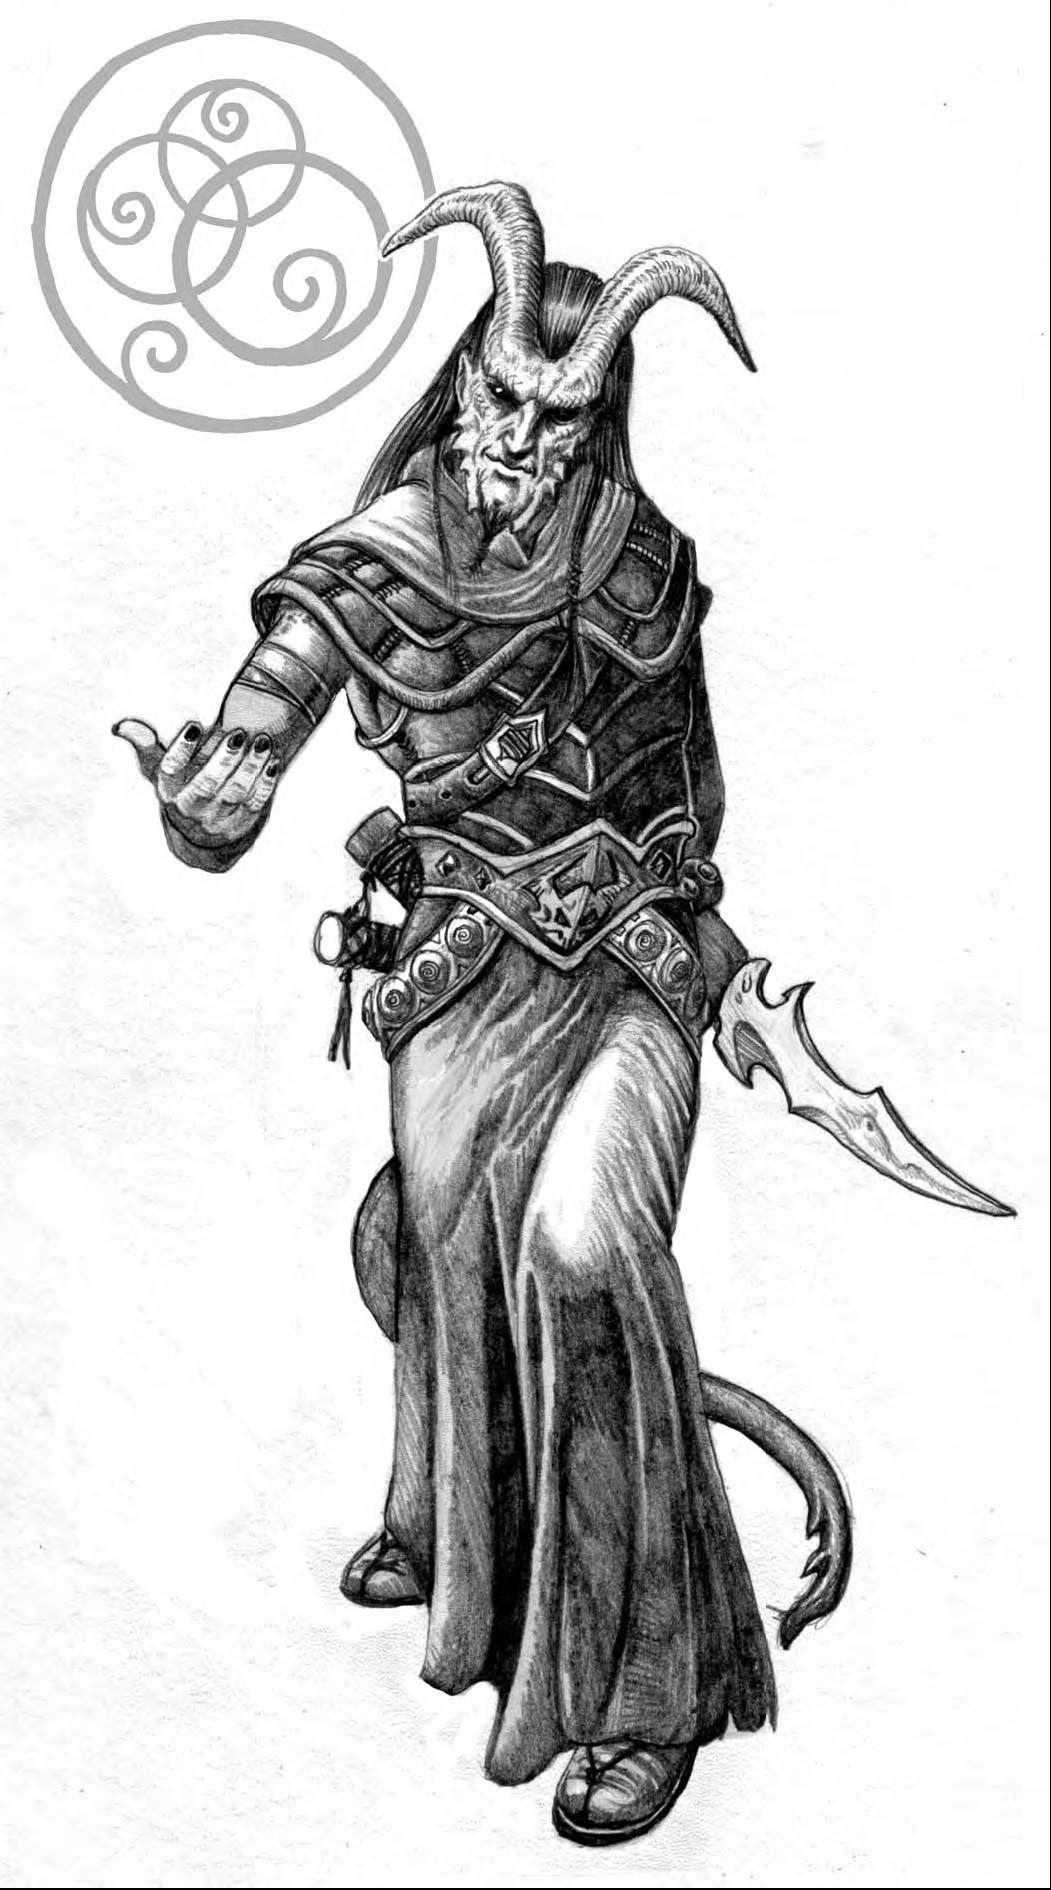 {$tags} Tiefling inviato Hero's Handbook, Tiefling (2009) © Goodman Games, Wizards of the Coast & Hasbro